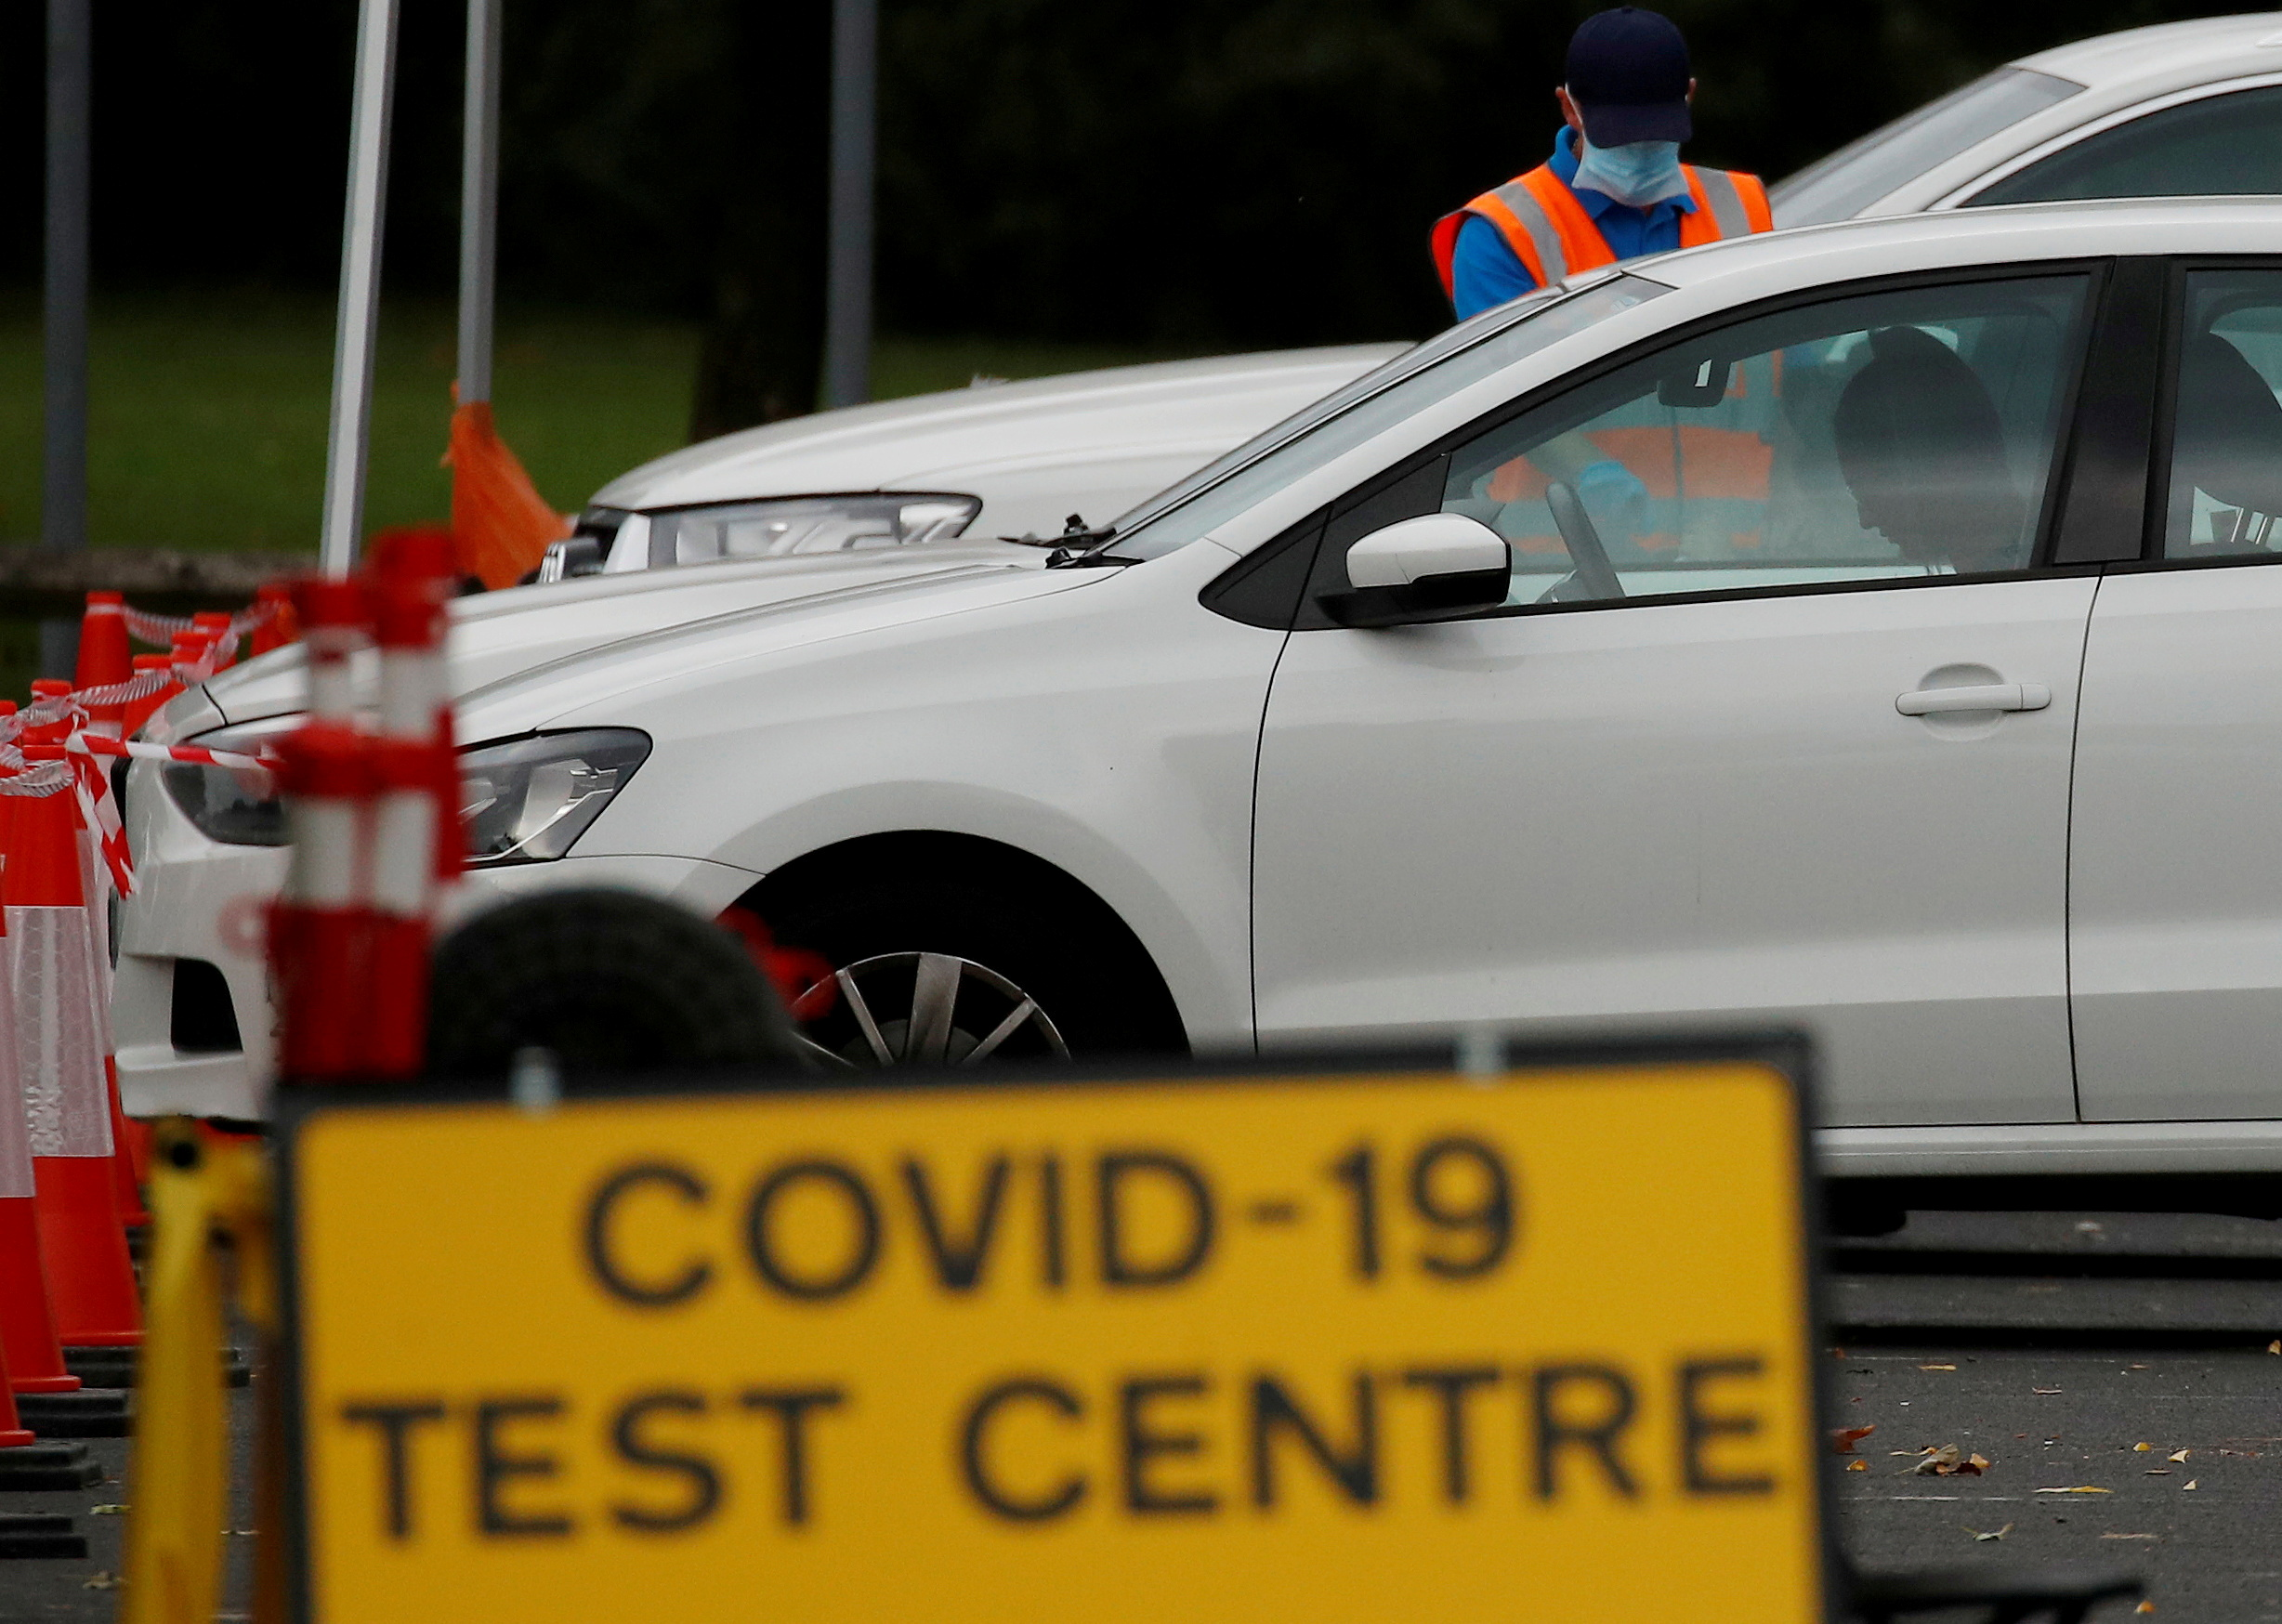 A drive-through testing centre in Bolton, Britain, September 22, 2020. REUTERS/Phil Noble